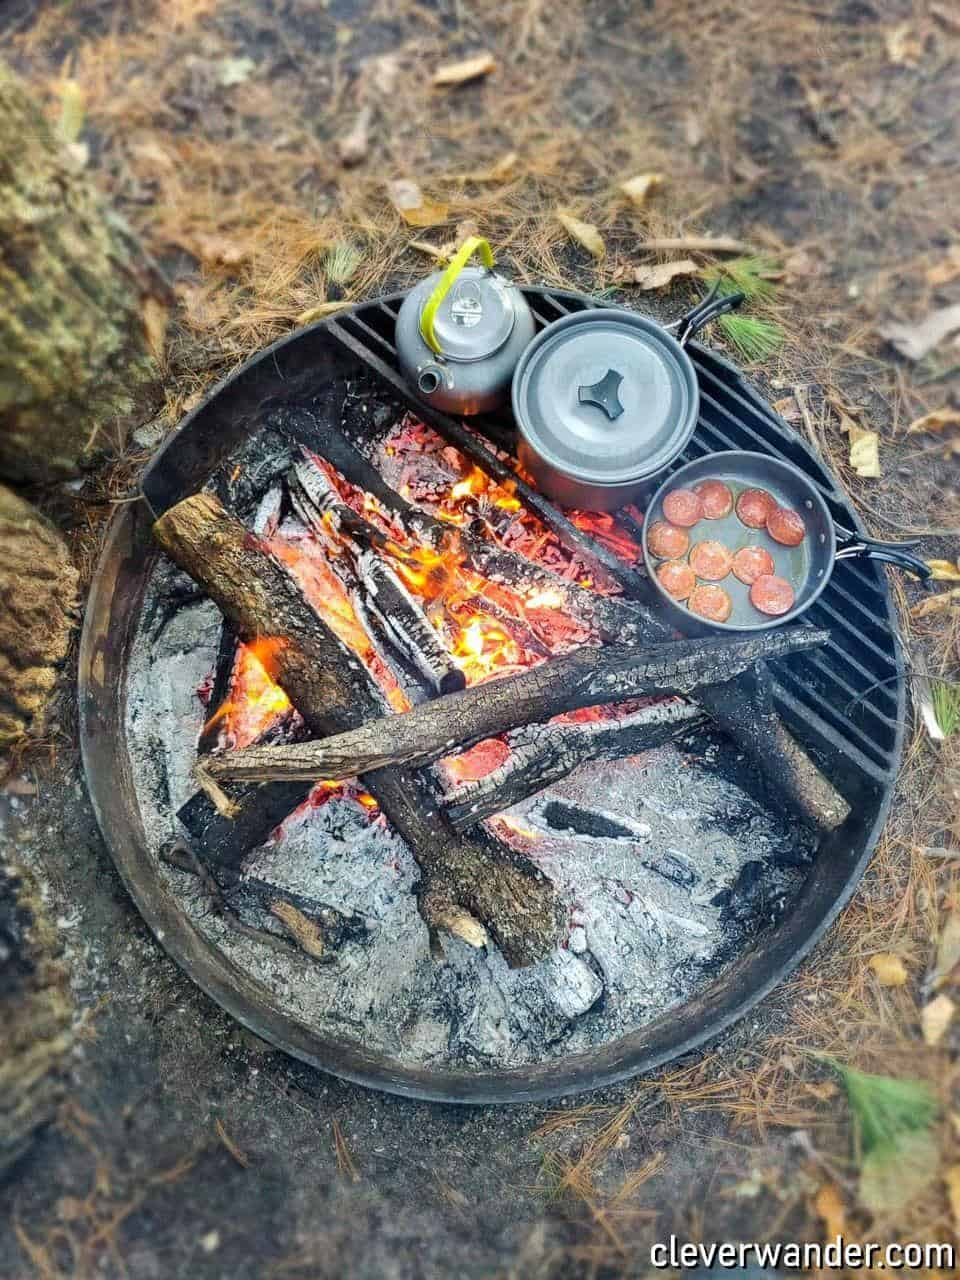 Odoland Camping Cookware - image review - 3